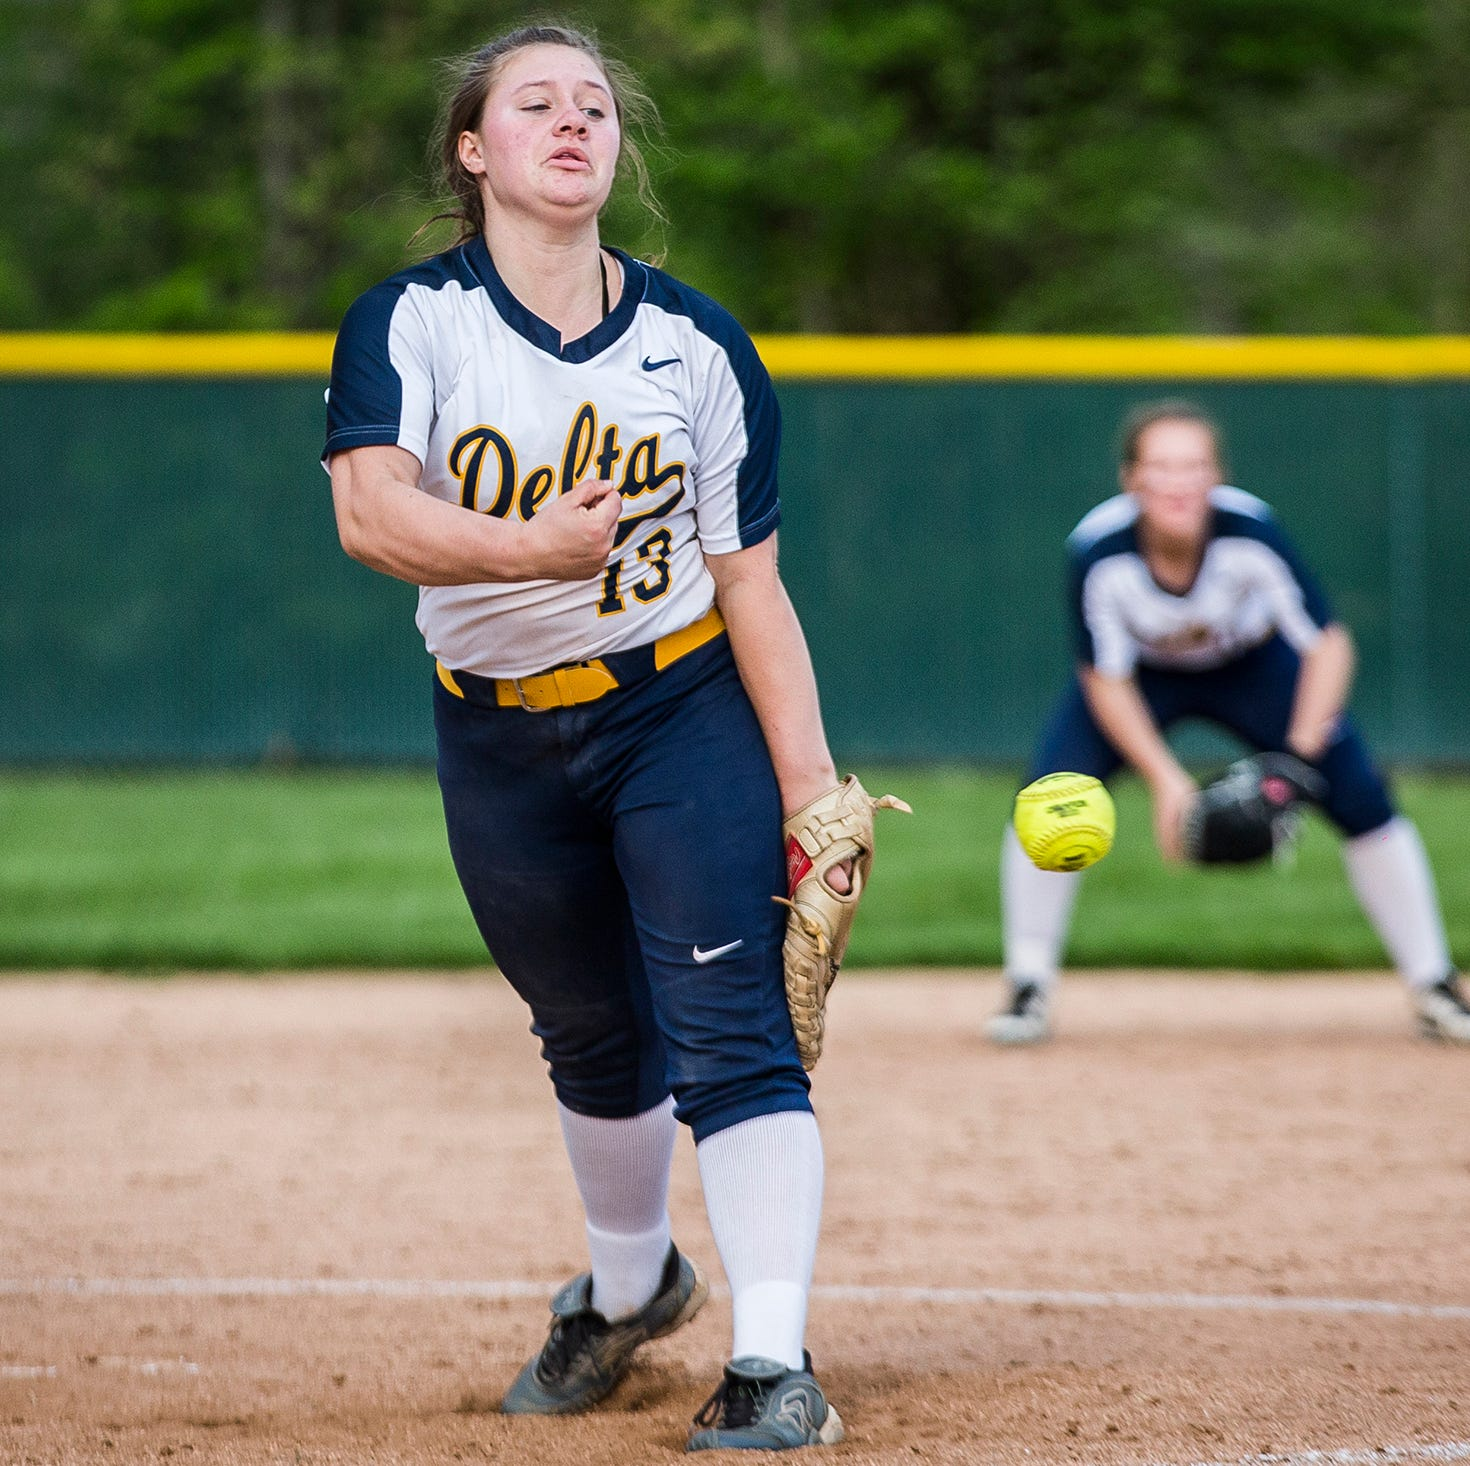 Delta's trust in pitcher pays off as Eagles win Delaware County Softball Tournament